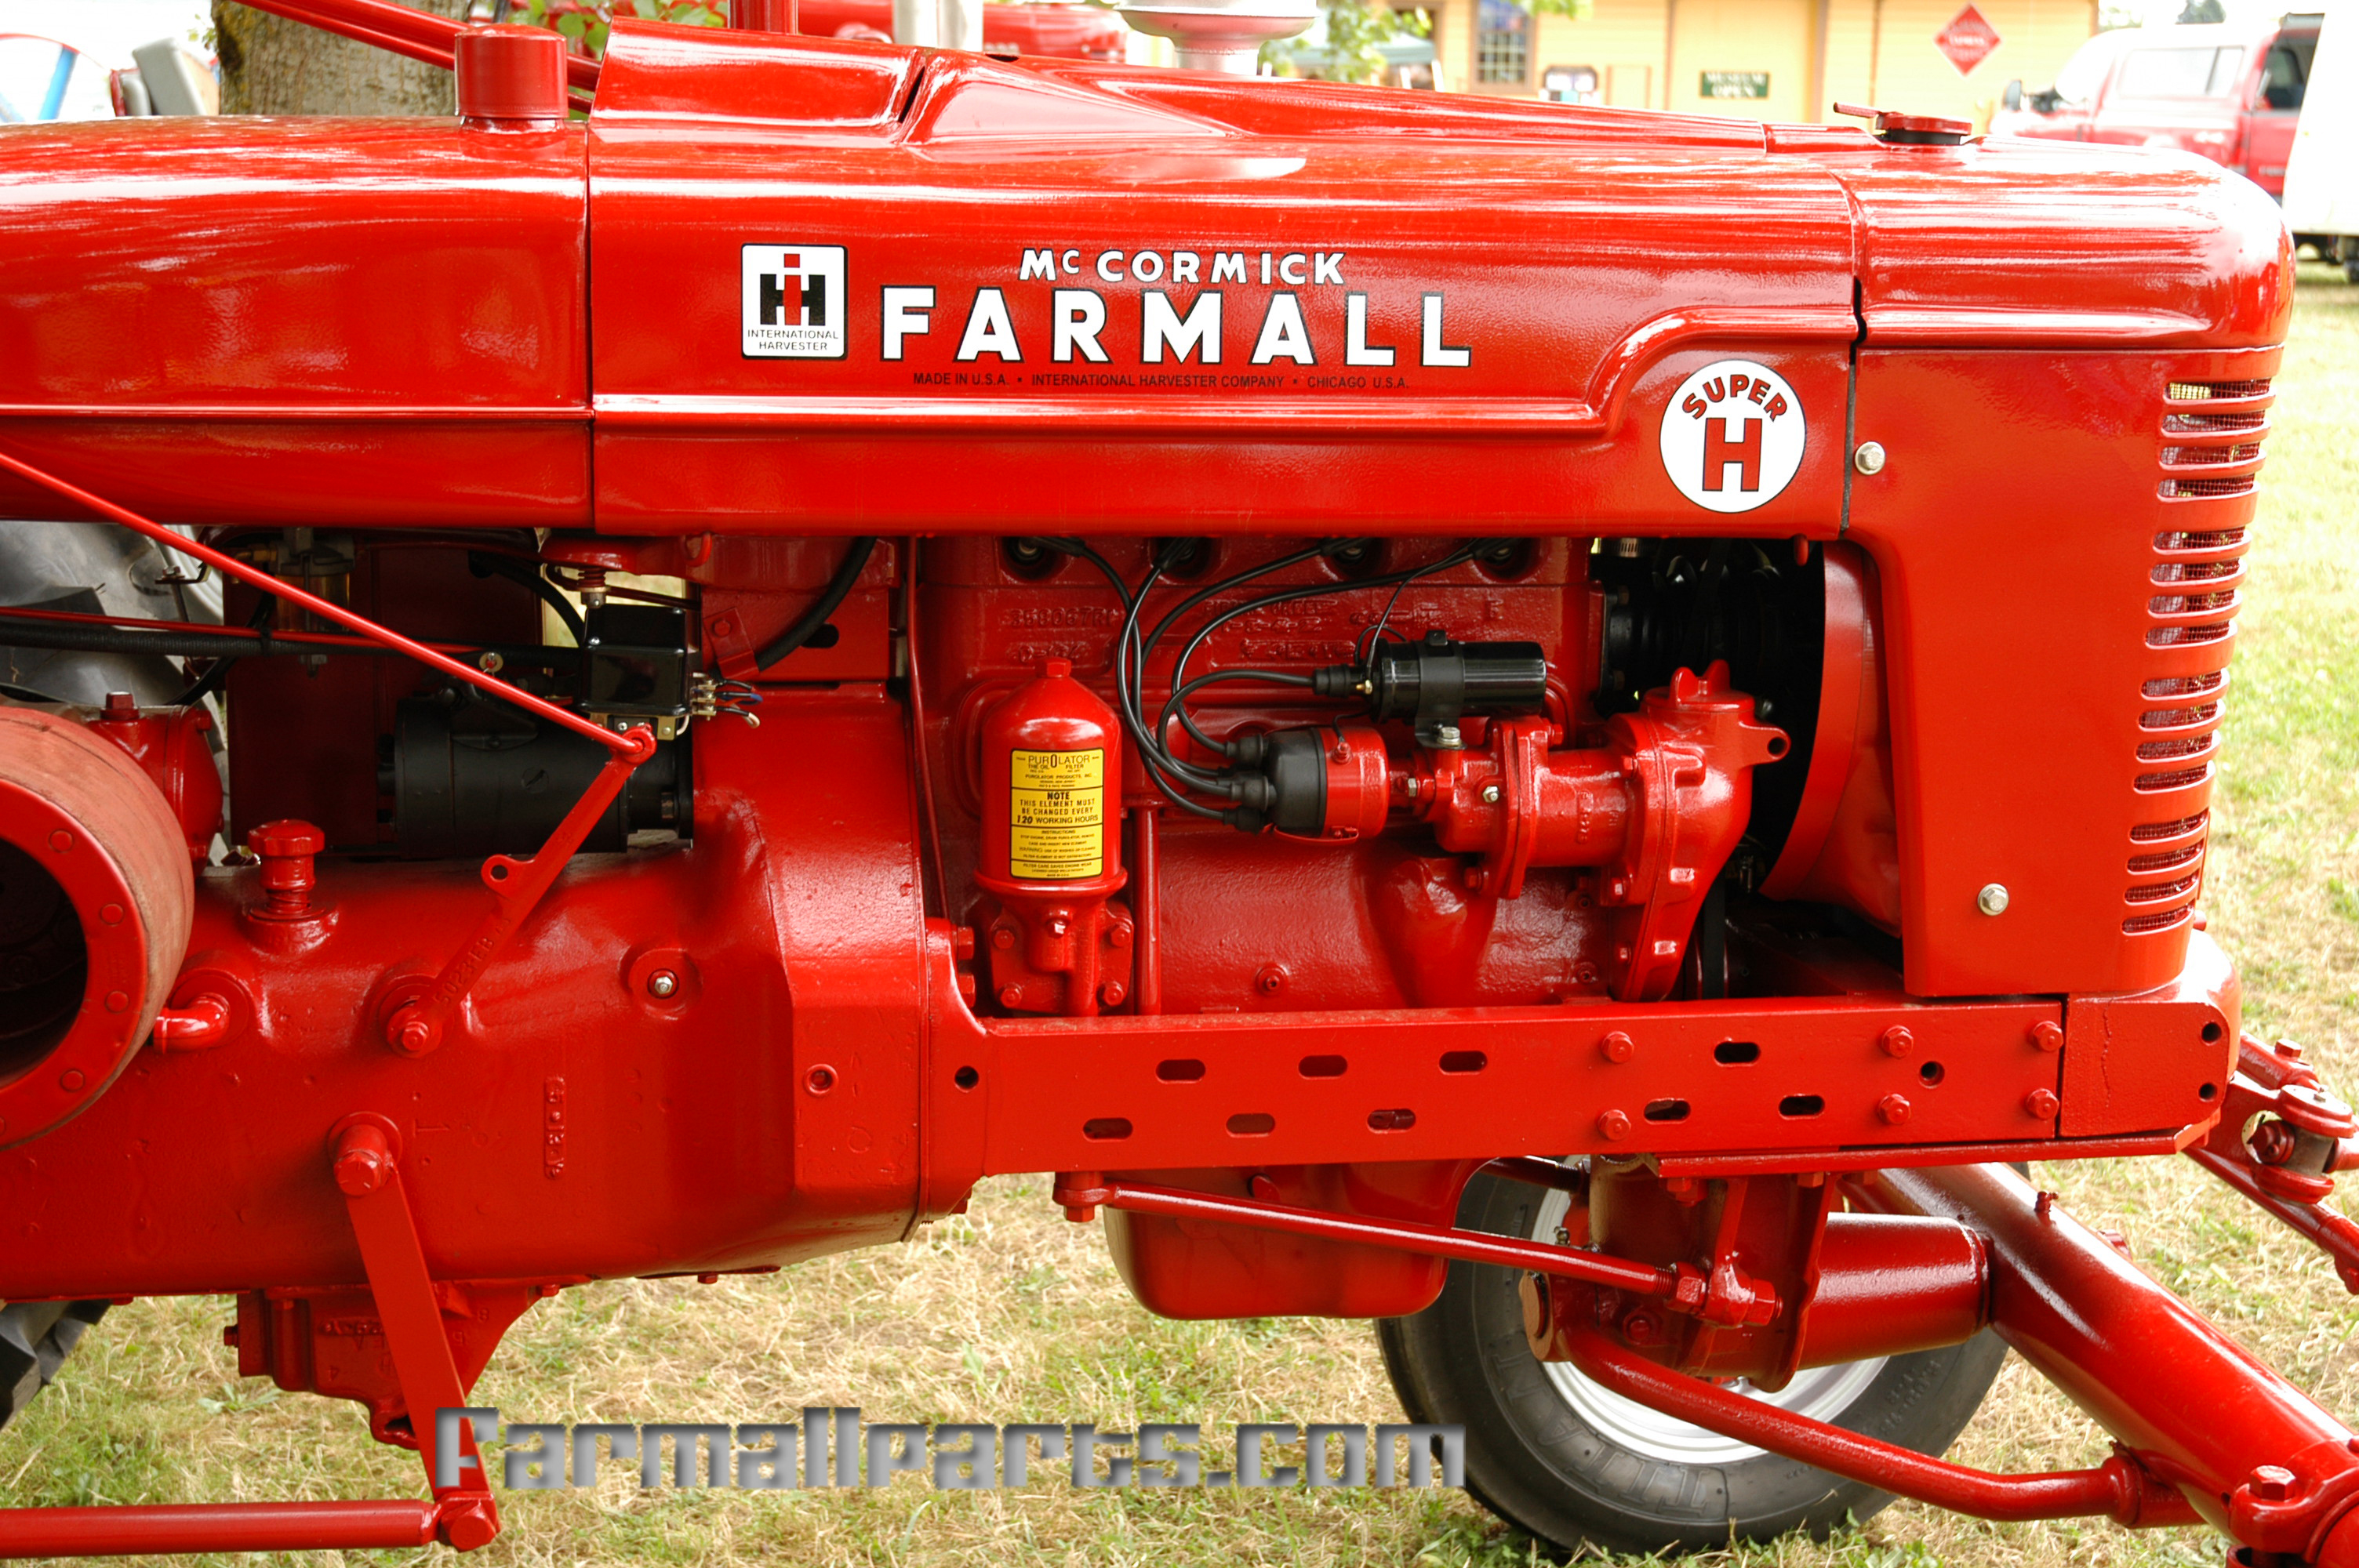 farmall 460 light wiring diagram farmall international tractor wiring diagram wiring diagram e7  farmall international tractor wiring